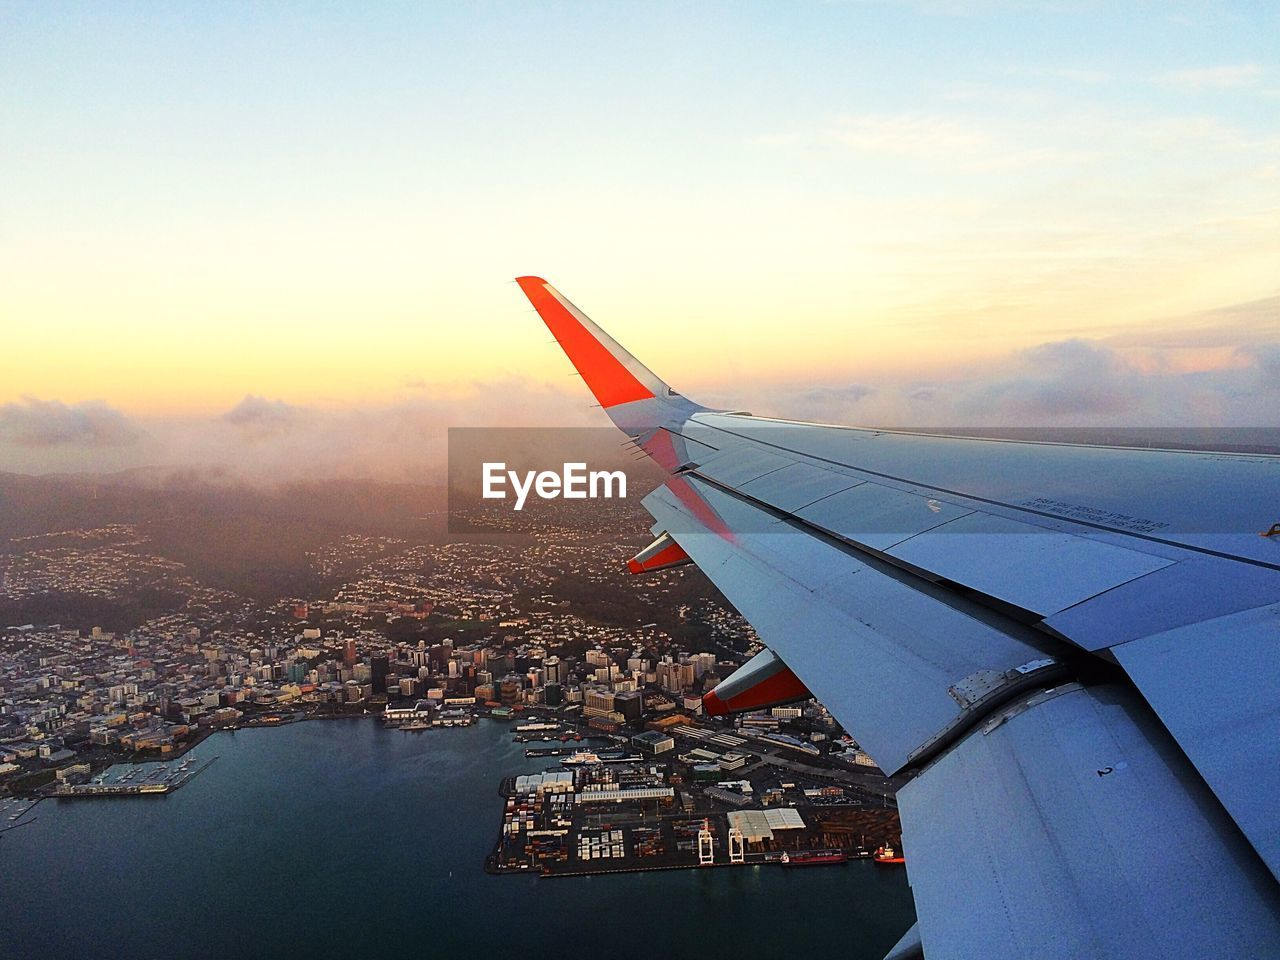 Aerial view of cityscape seen from plane